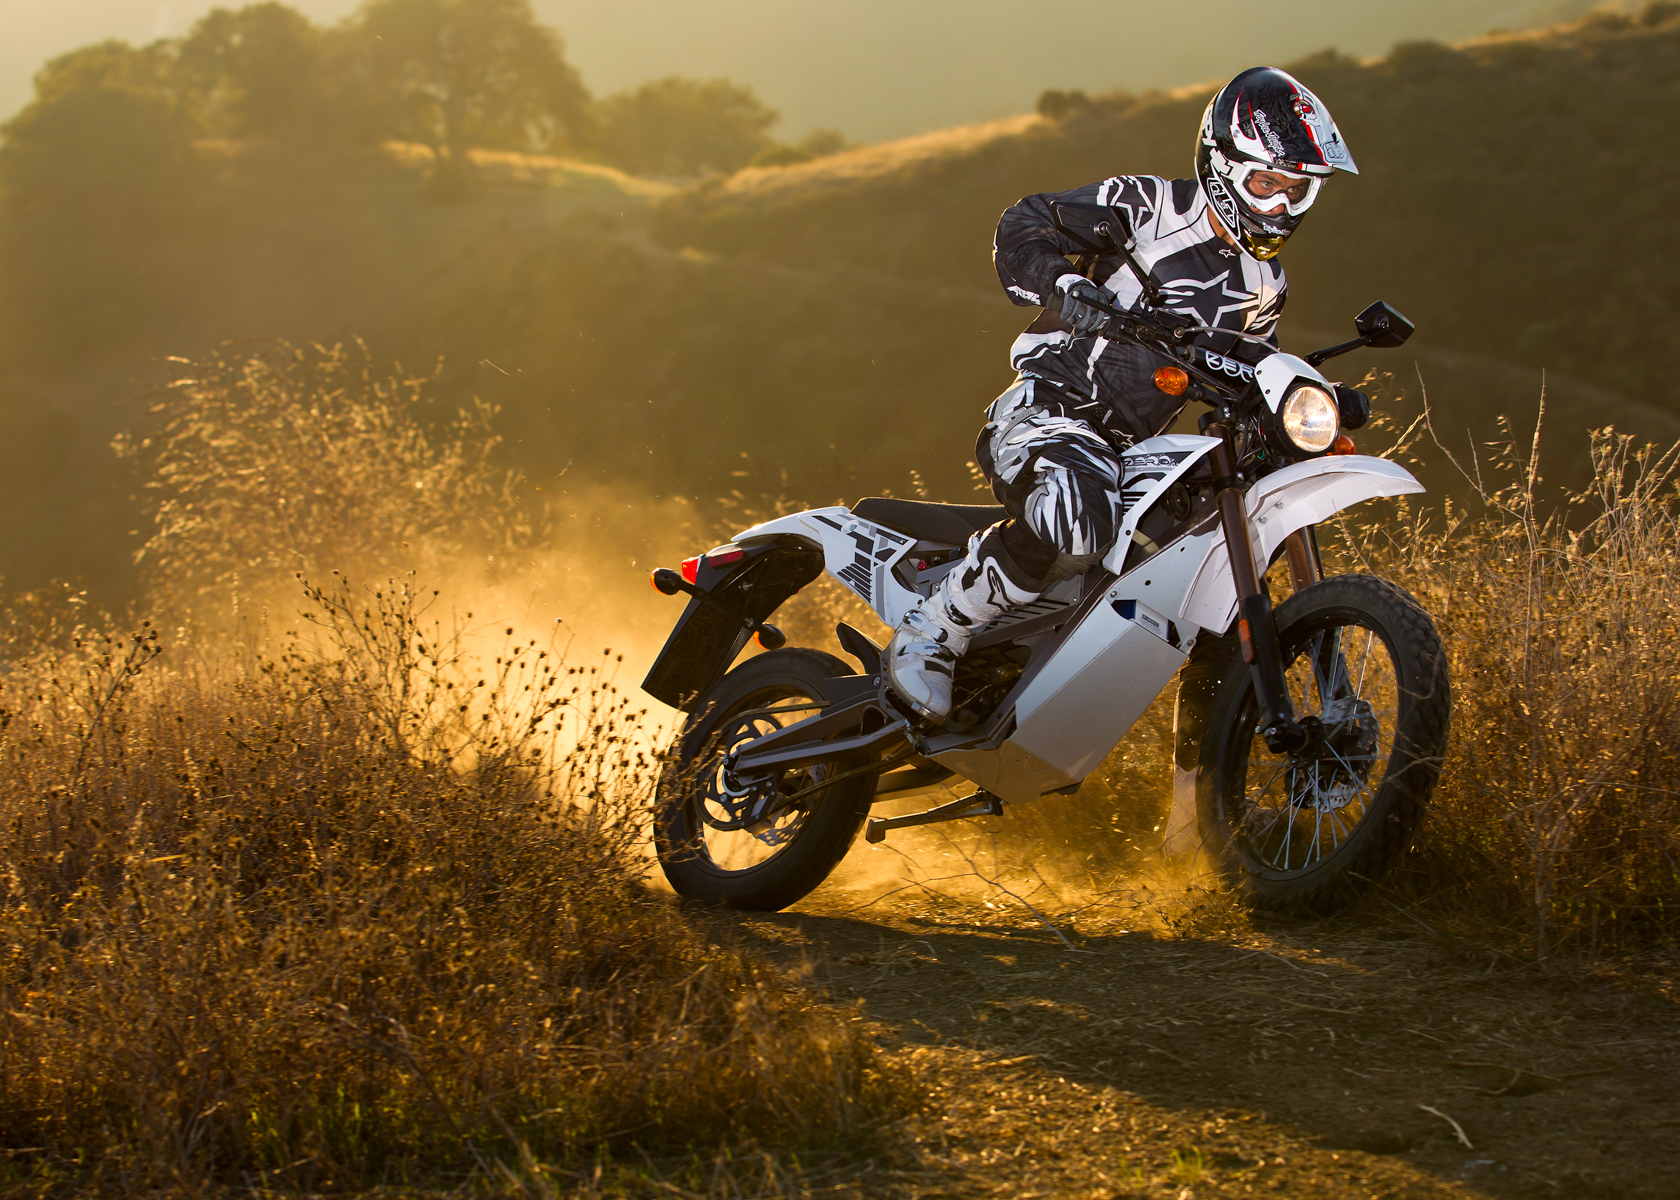 2012 Zero X Electric Motorcycle: Charging Down Trail